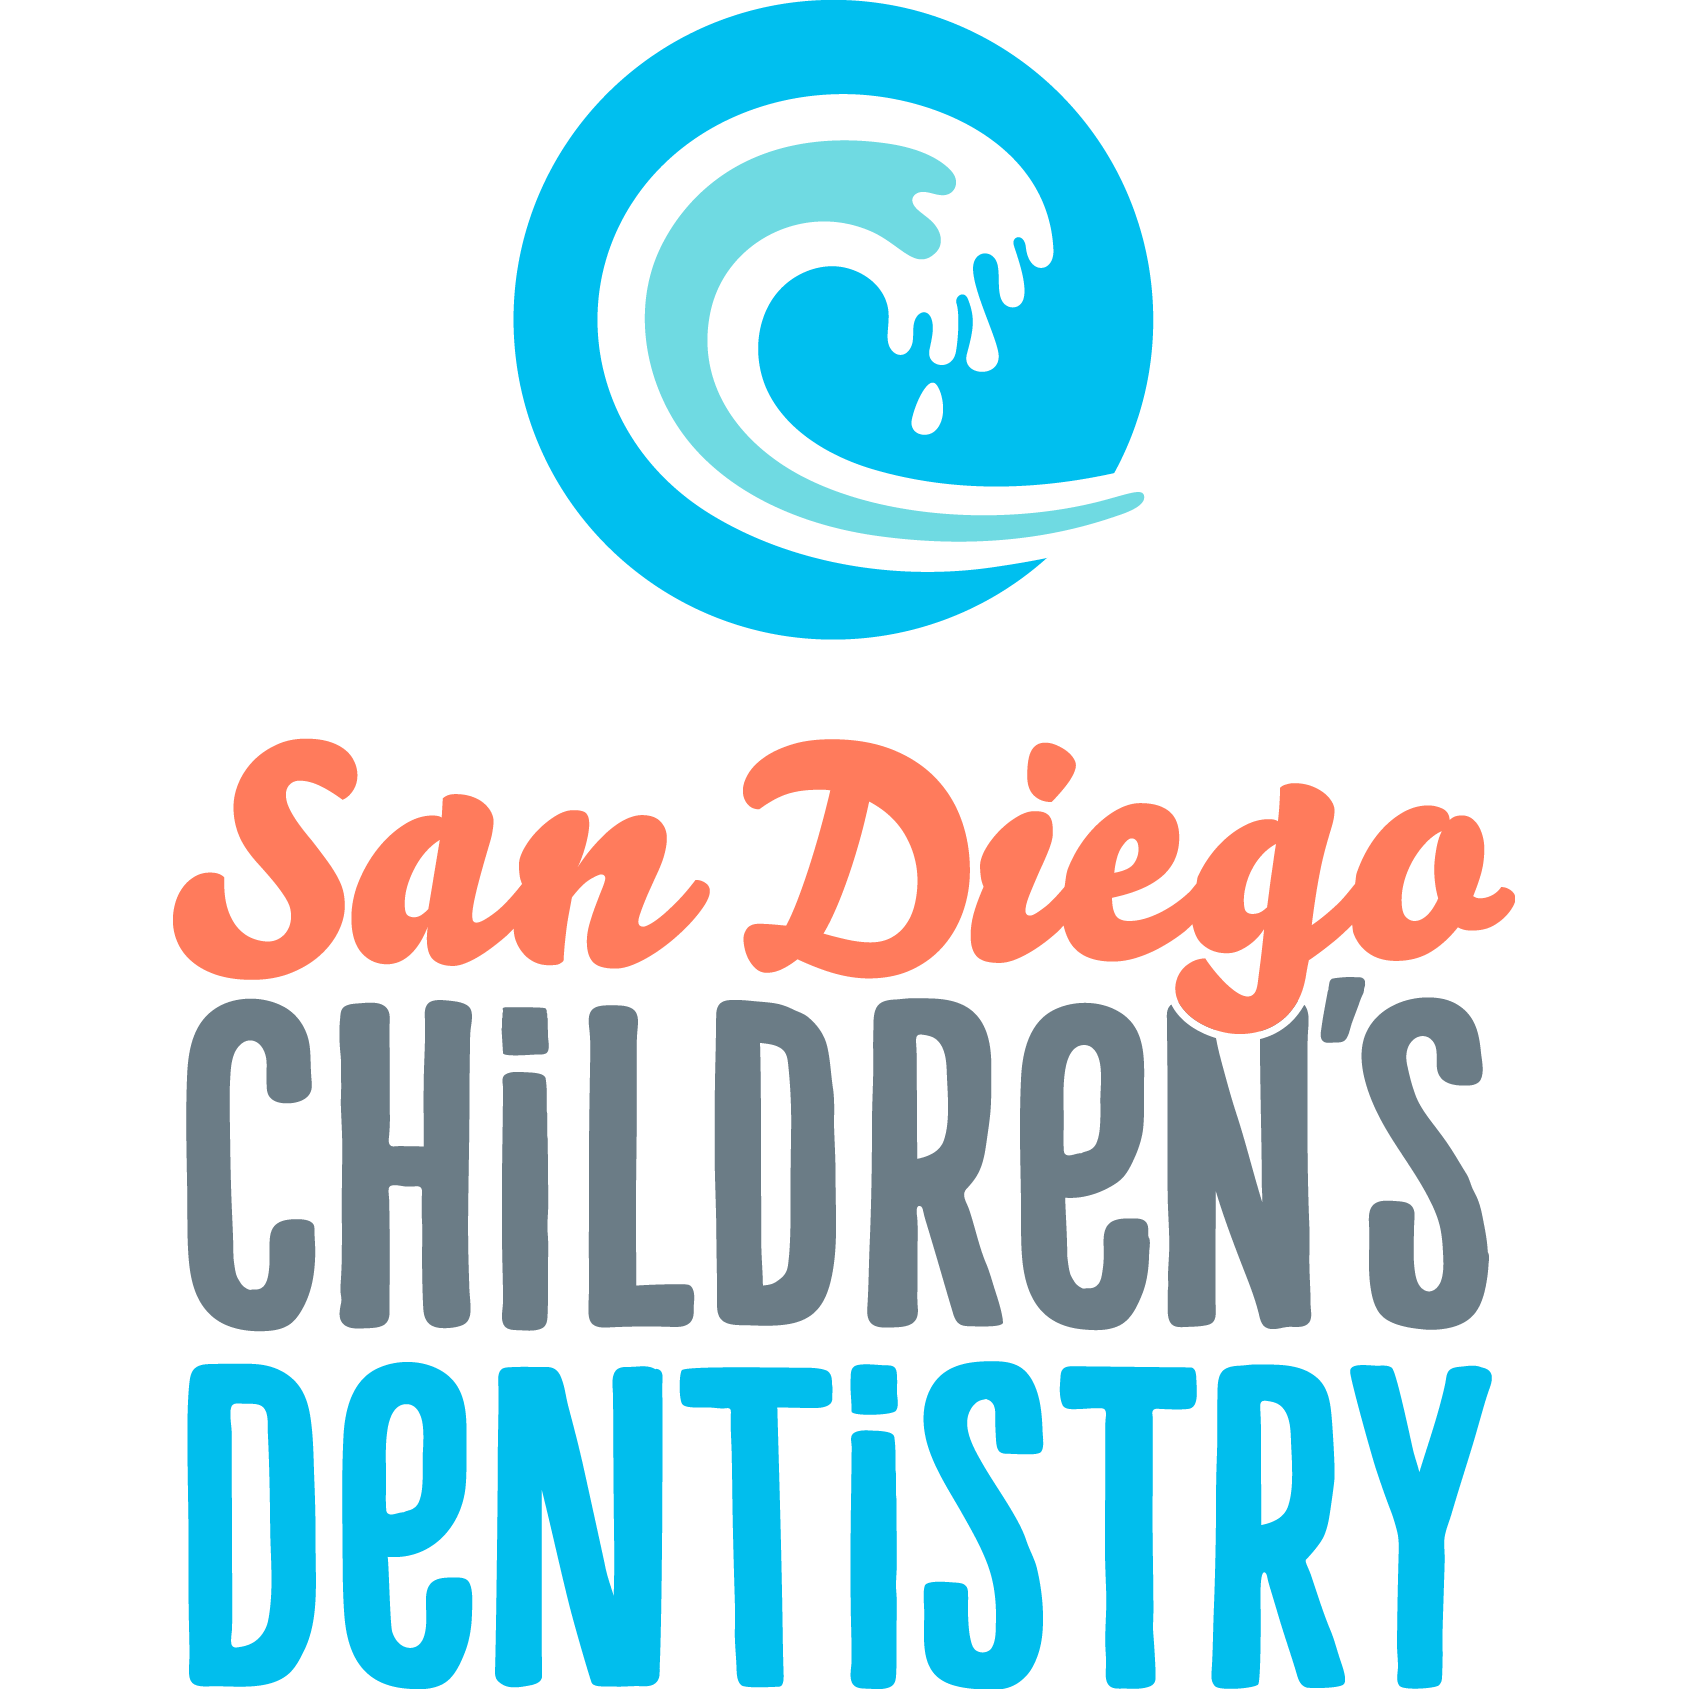 San Diego Children's Dentistry